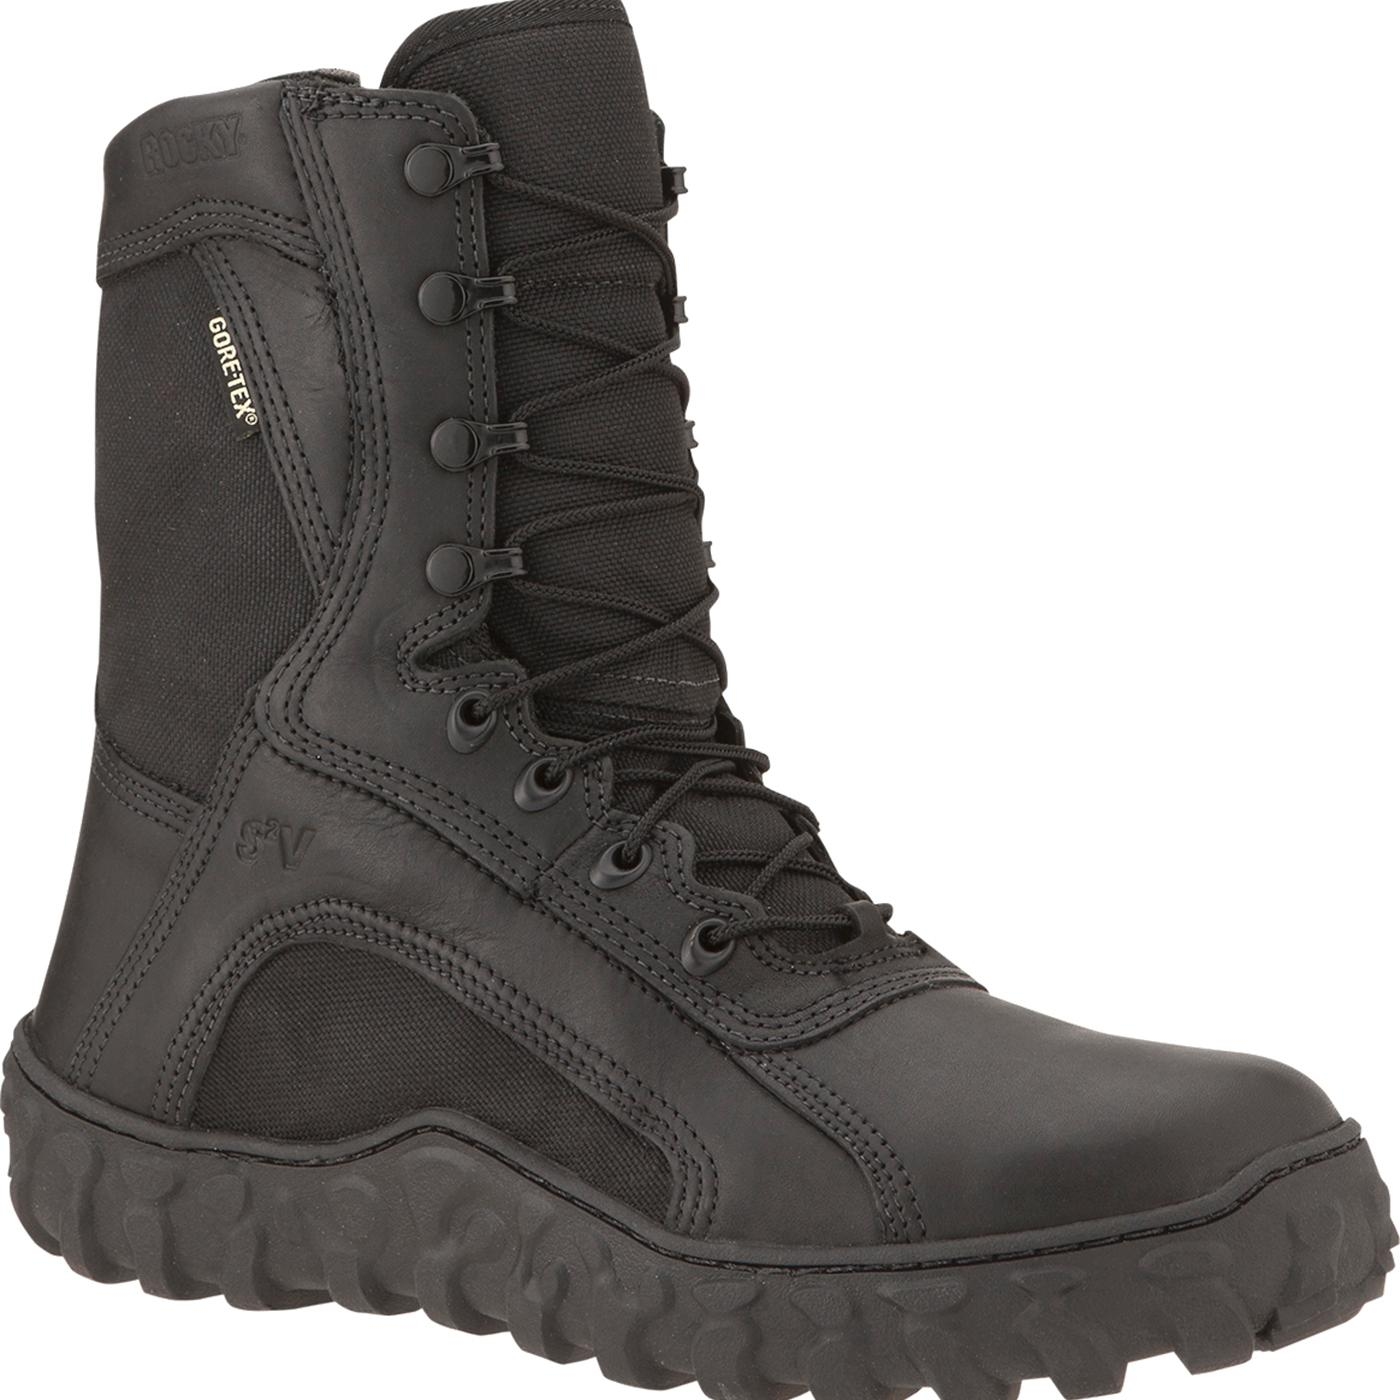 7e7a36d3cb7 Rocky S2V GORE-TEX® Waterproof Tactical Military Boot